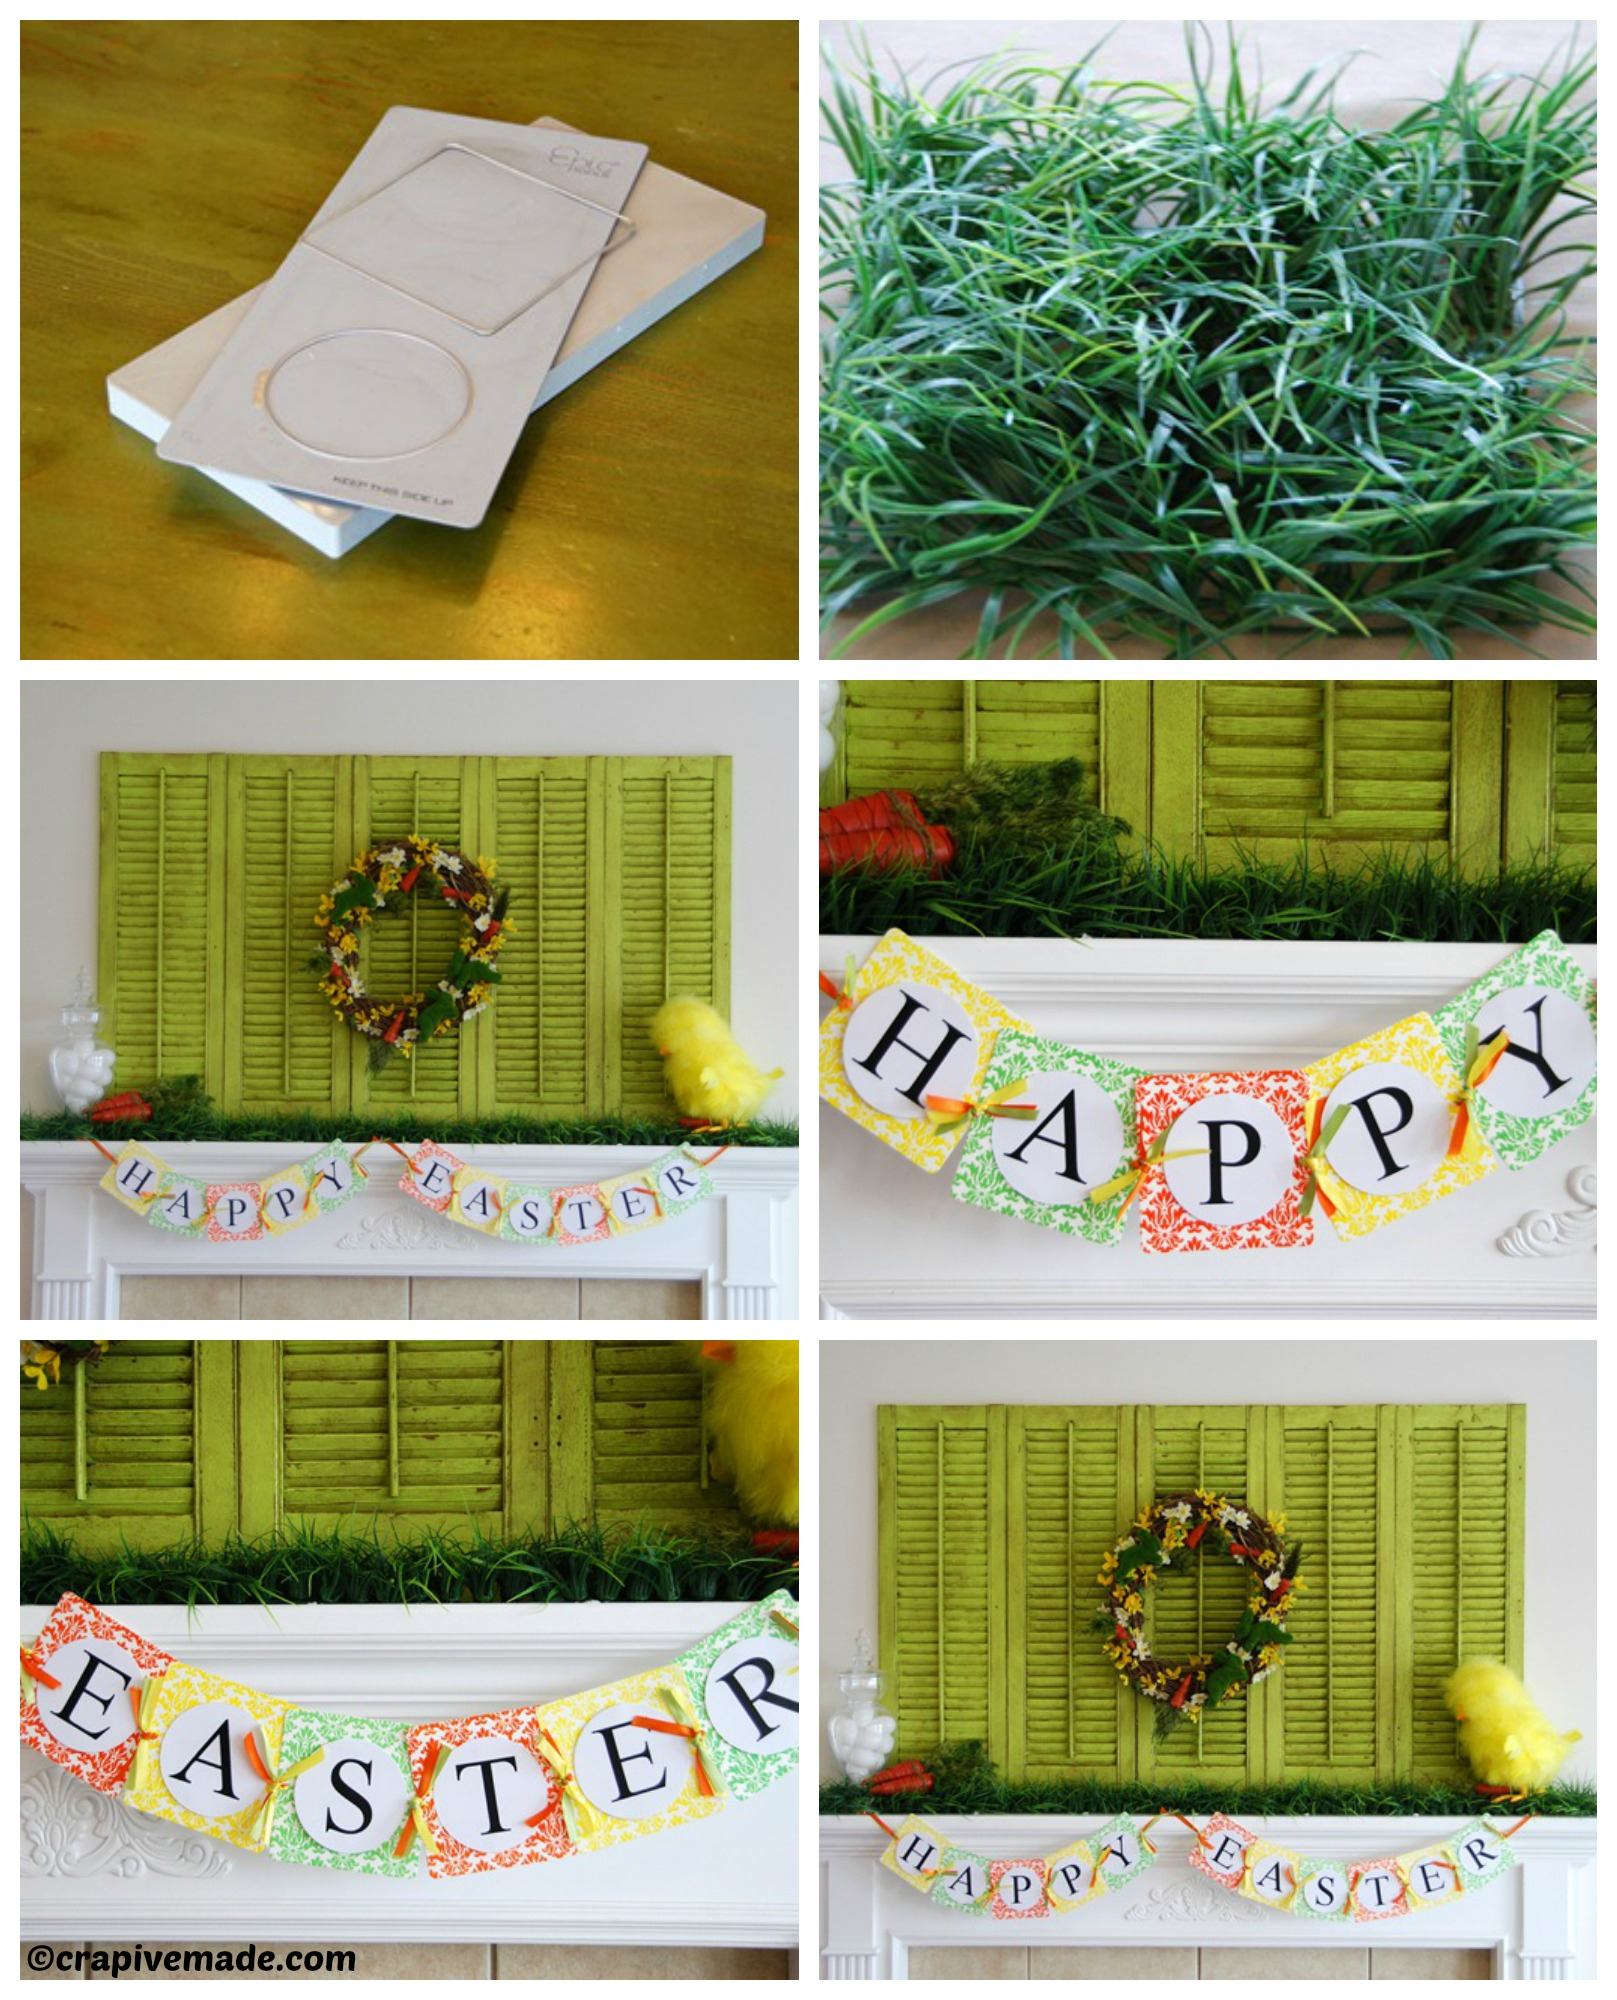 How to make an Easter Mantel Epic Letterpress